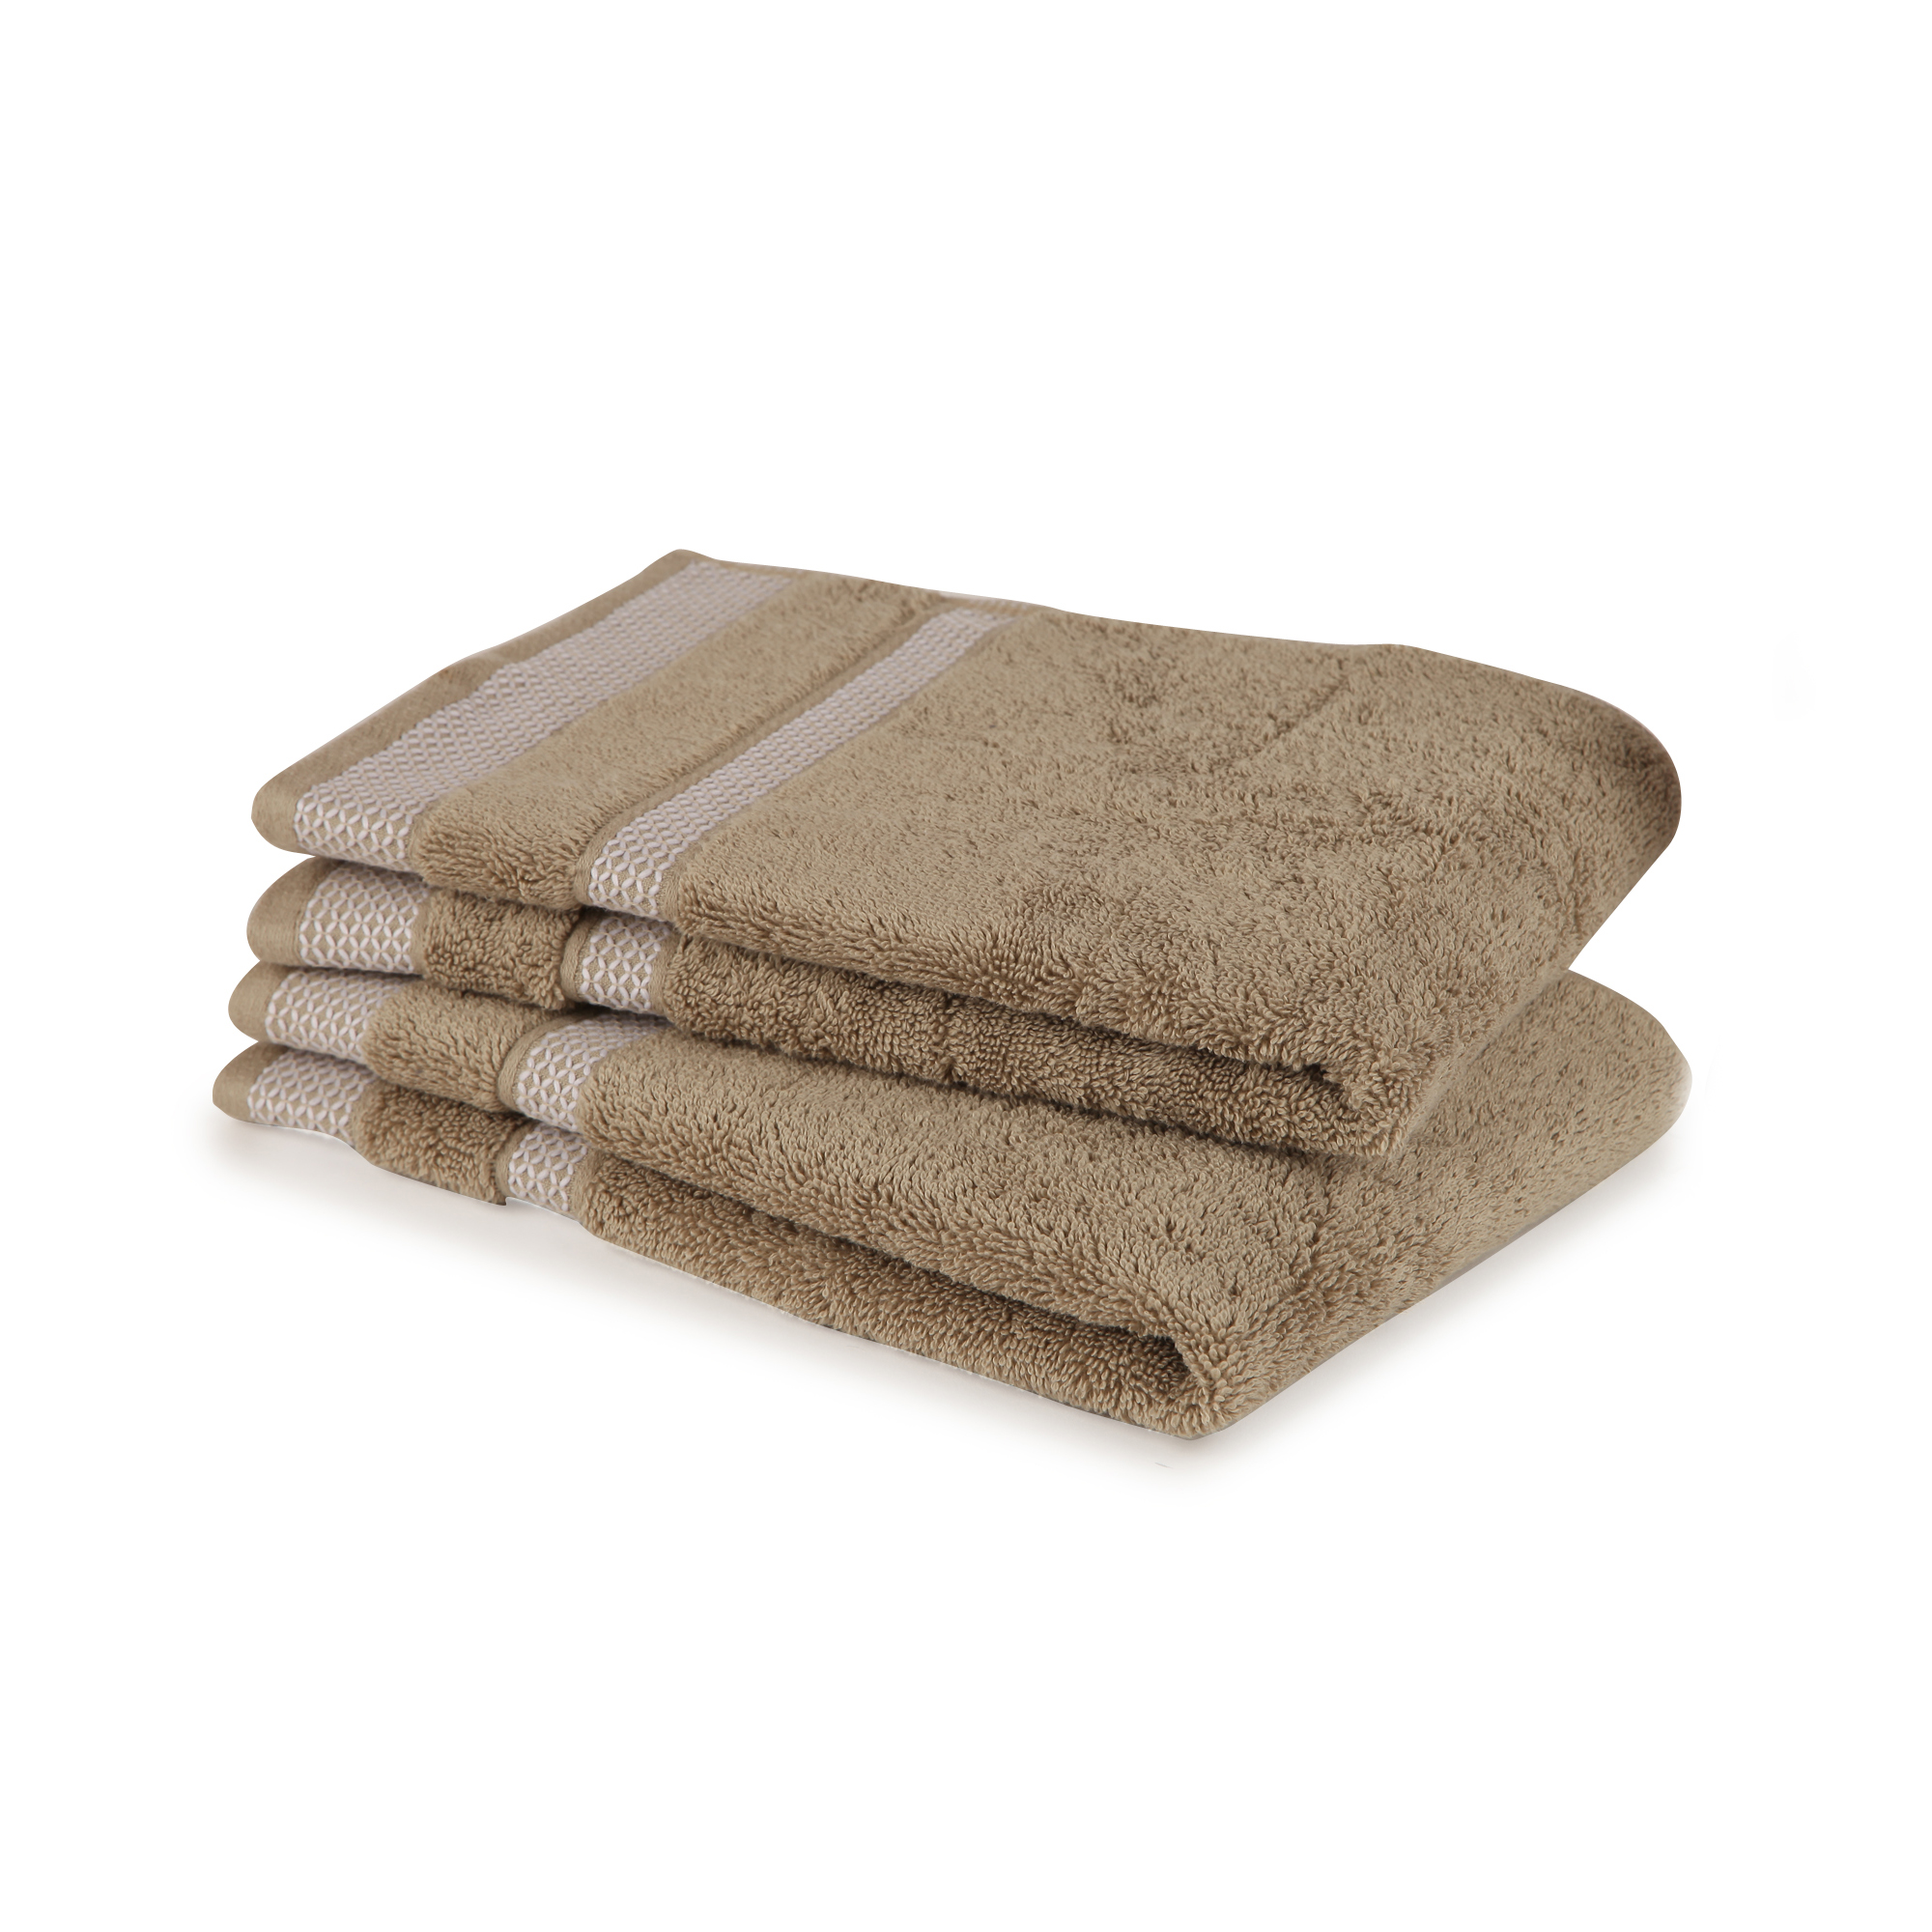 Spaces Core Double Bed Sheets in Taupe Colour by Spaces